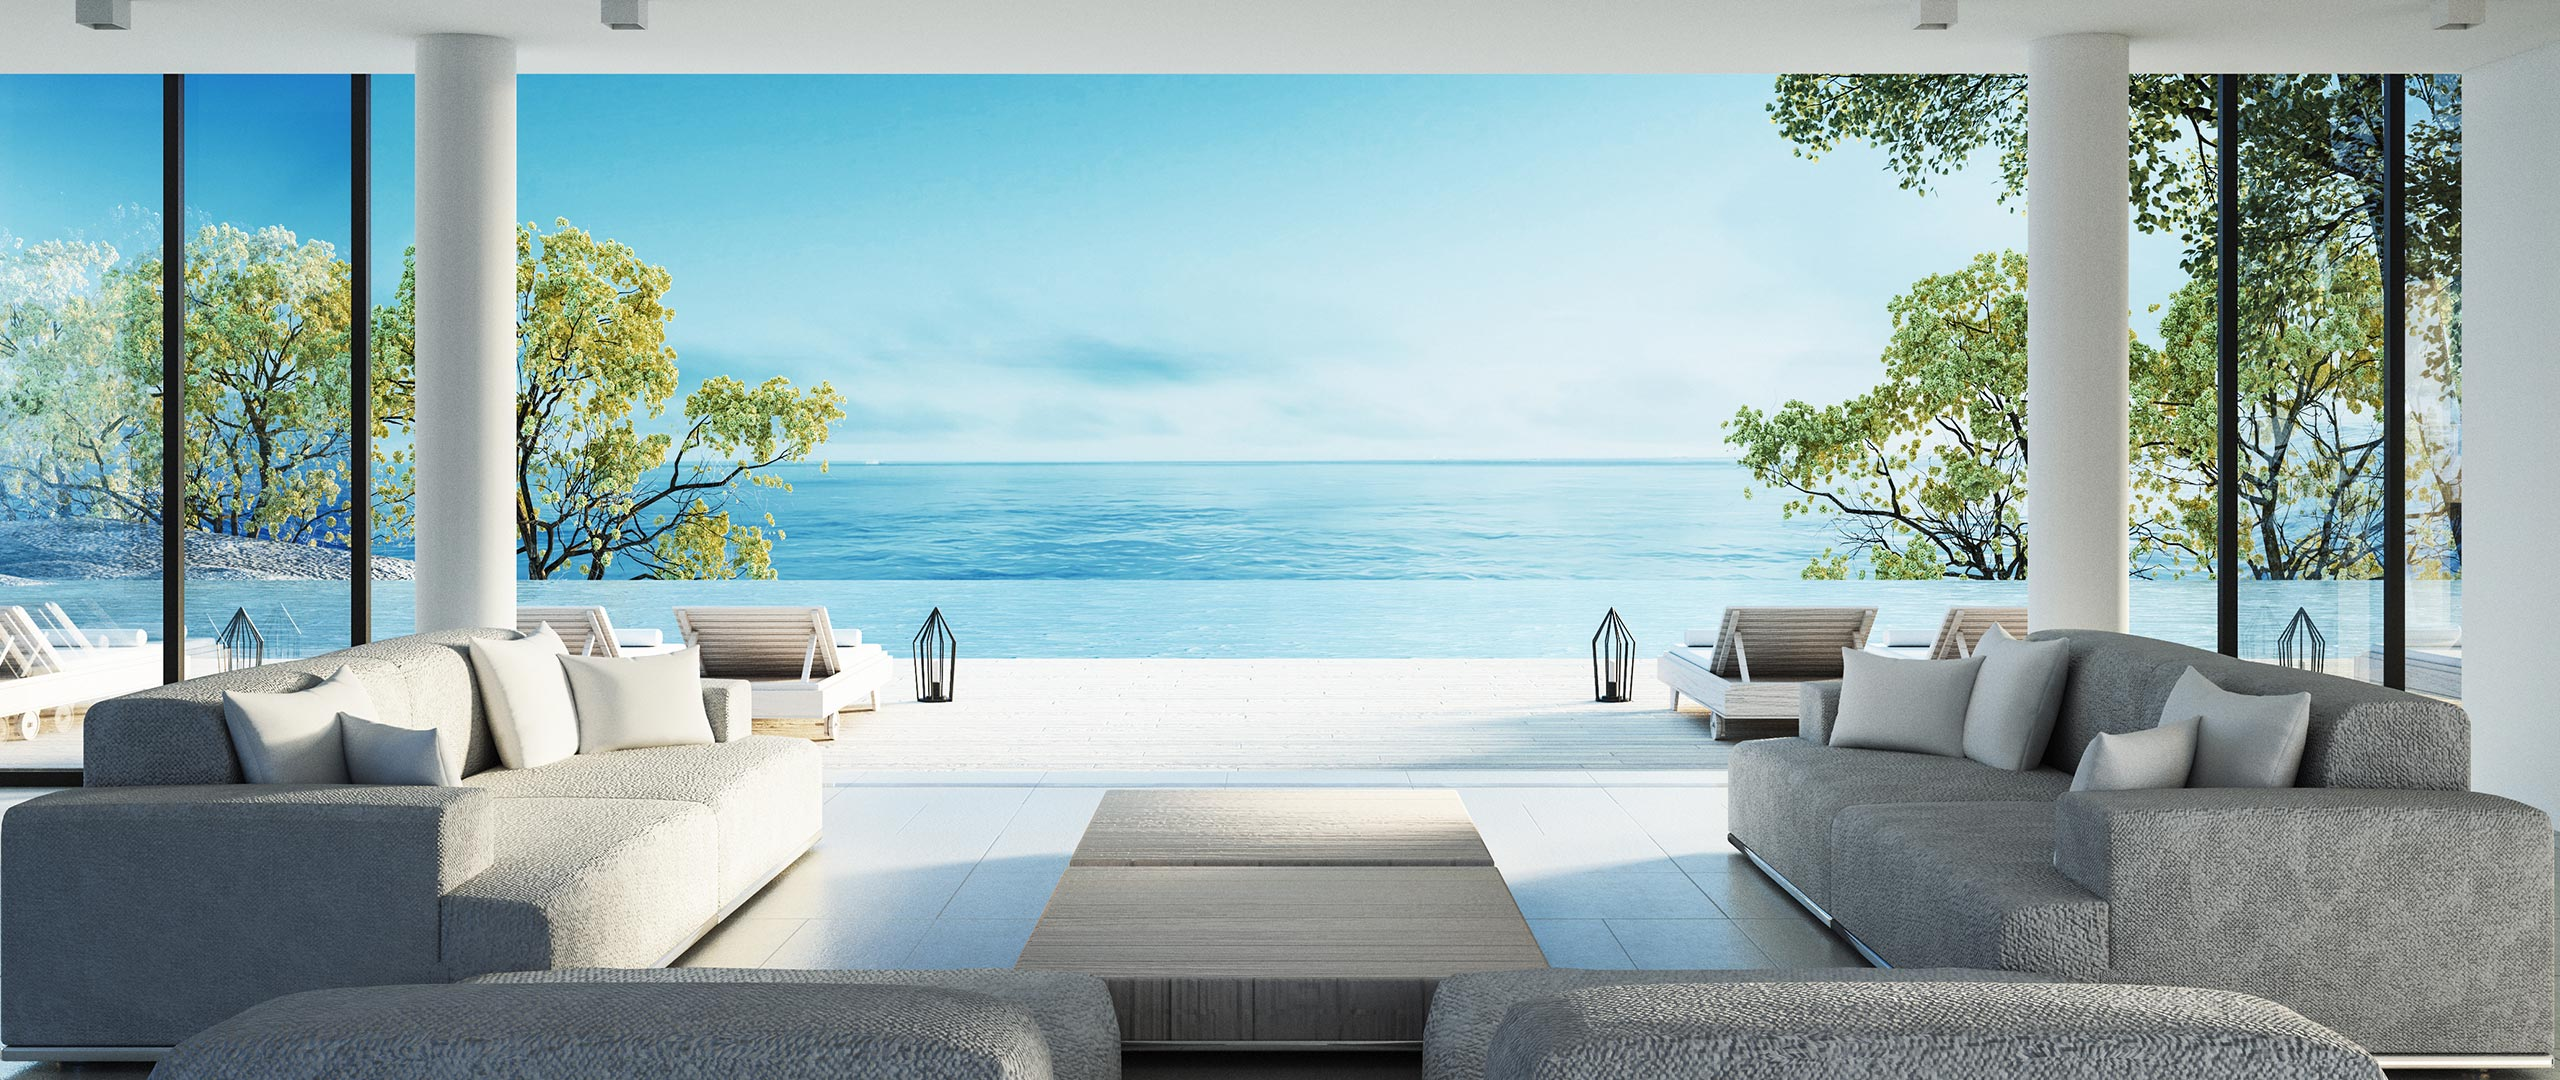 World Luxury Group - Sea View